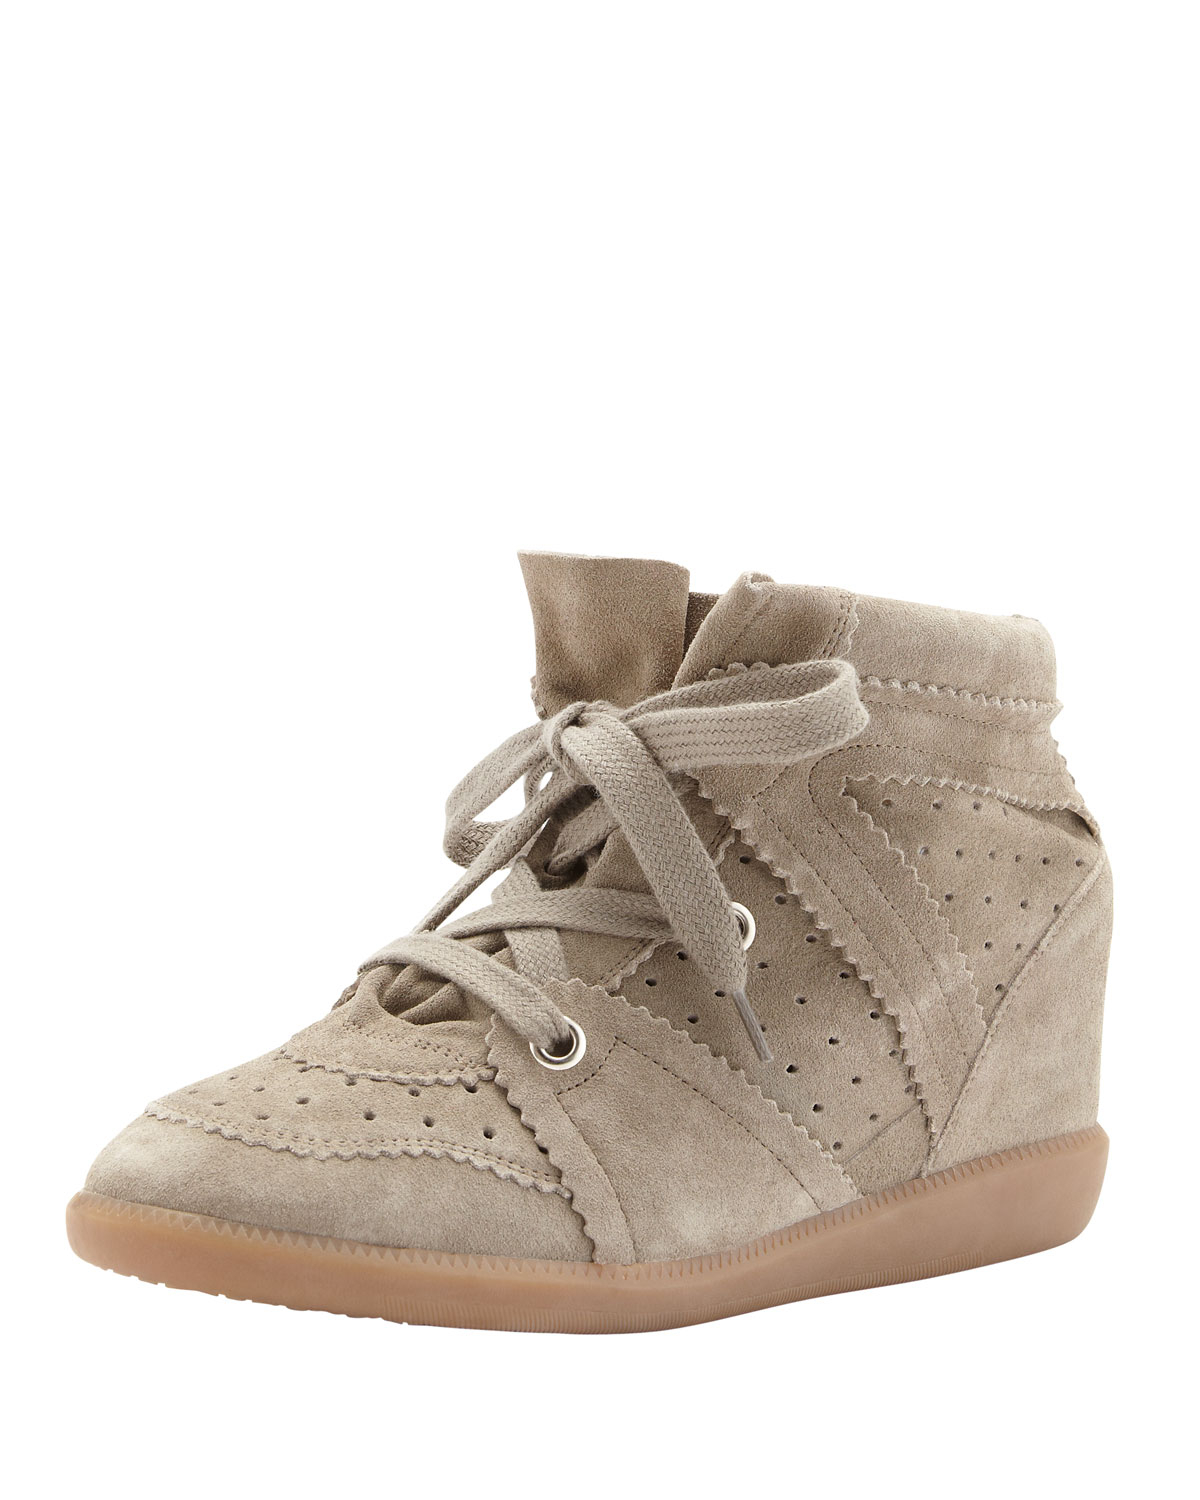 lyst isabel marant bobby lowrise perforated wedge sneaker taupe in gray. Black Bedroom Furniture Sets. Home Design Ideas